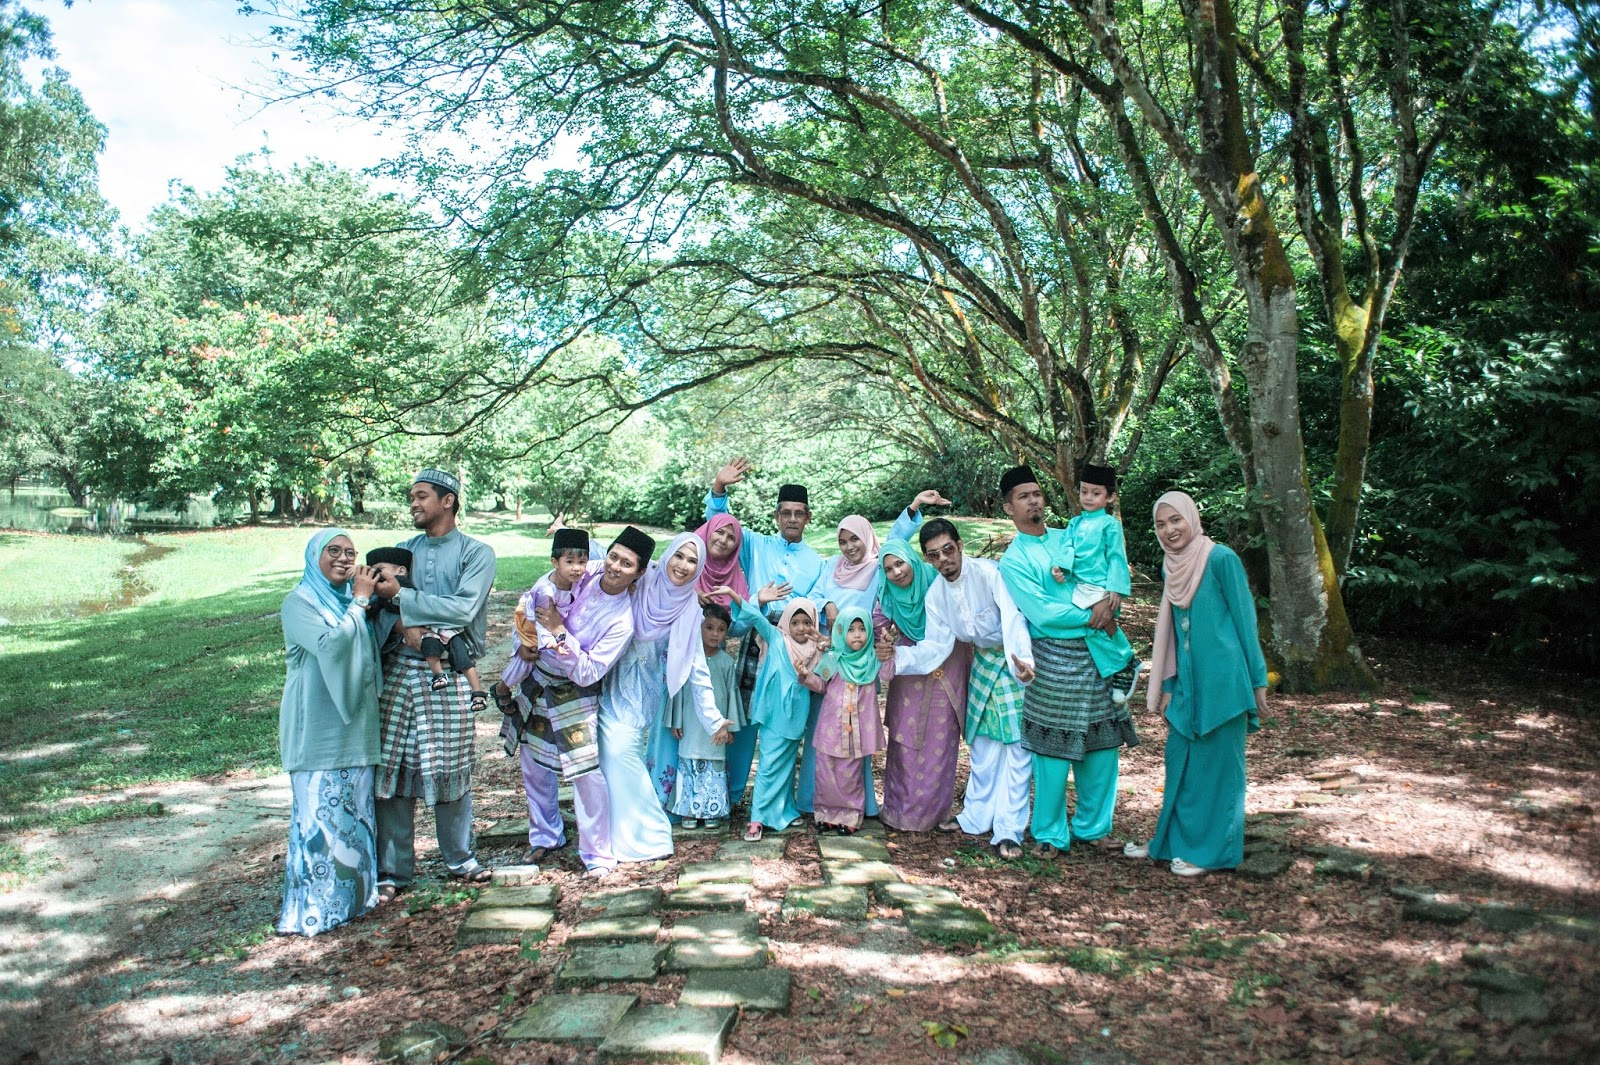 Raya Outdoor Photoshoot At Taiping Lake Garden